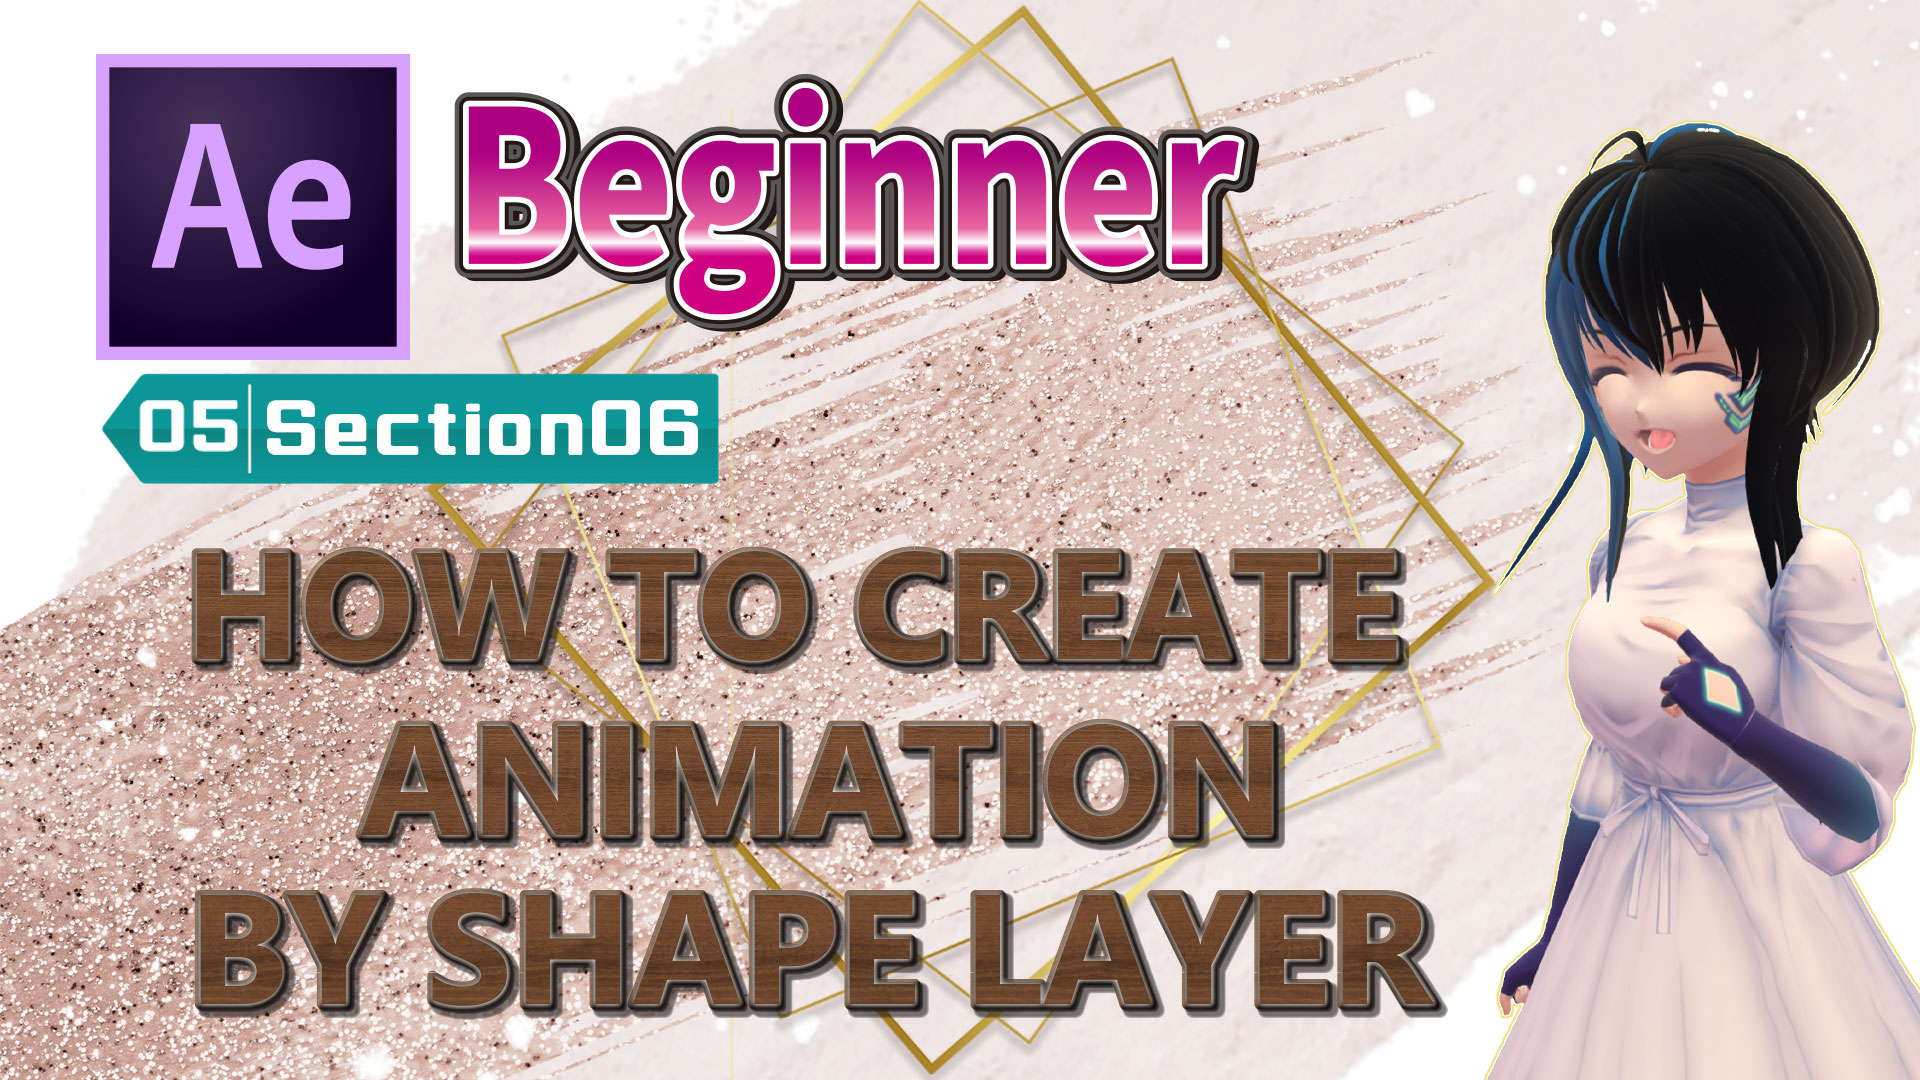 HOW TO CREATE ANIMATION BY SHAPE LAYER